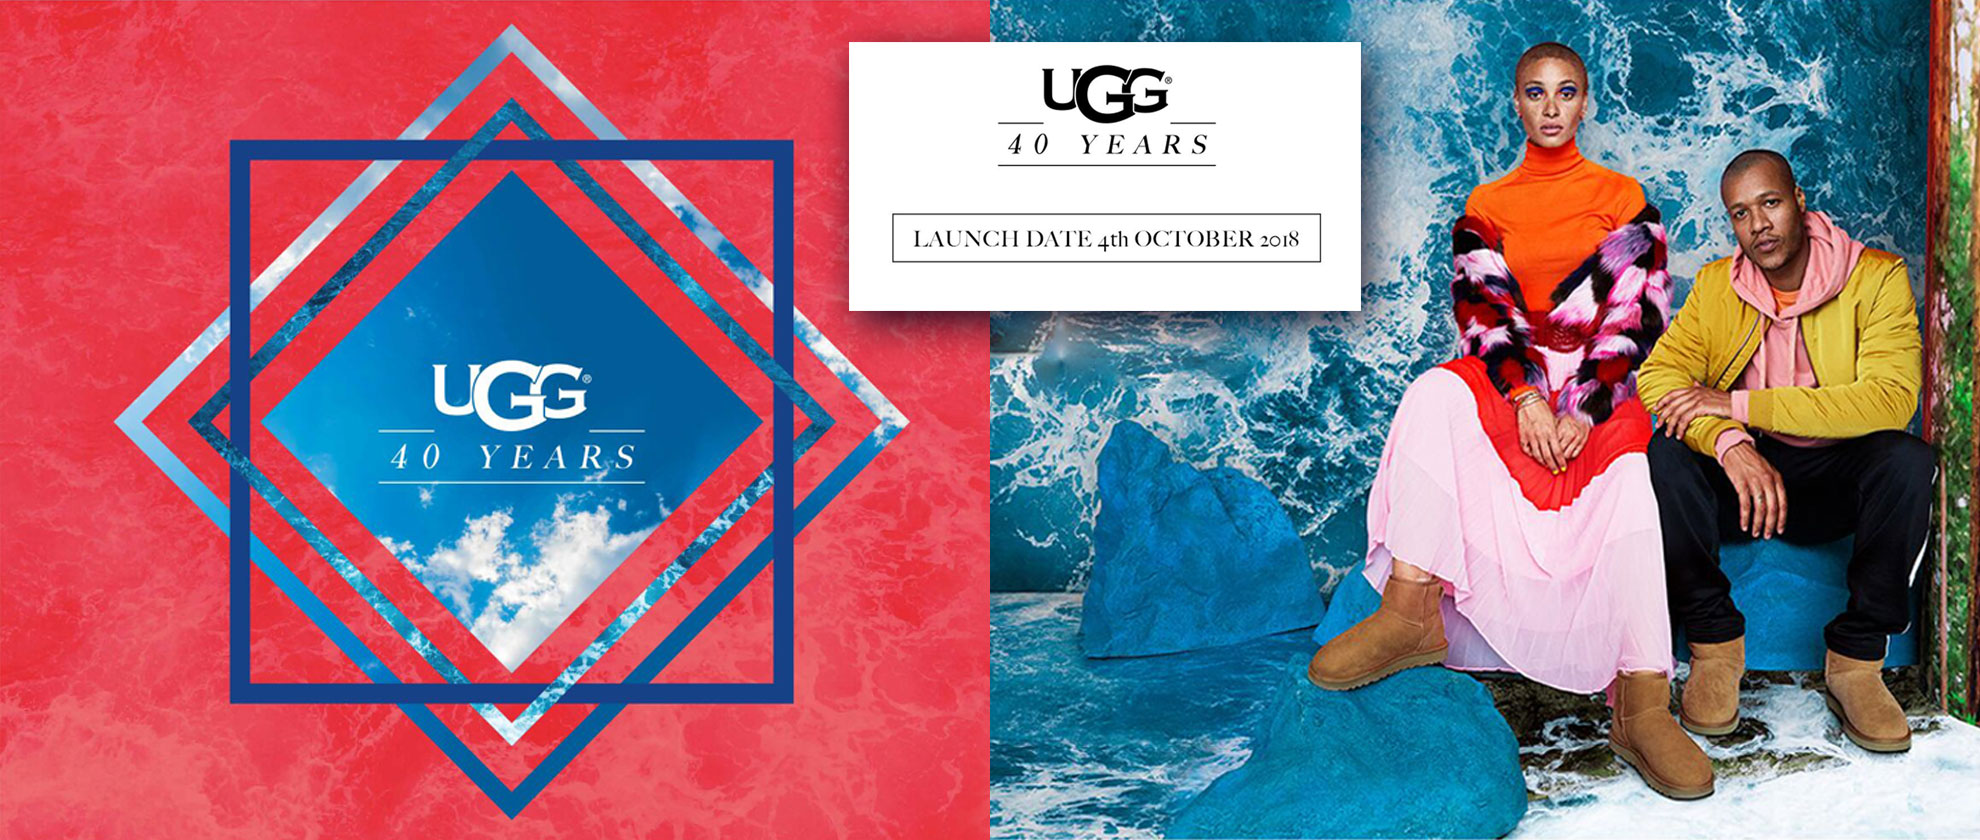 Happy 40th Birthday UGG!